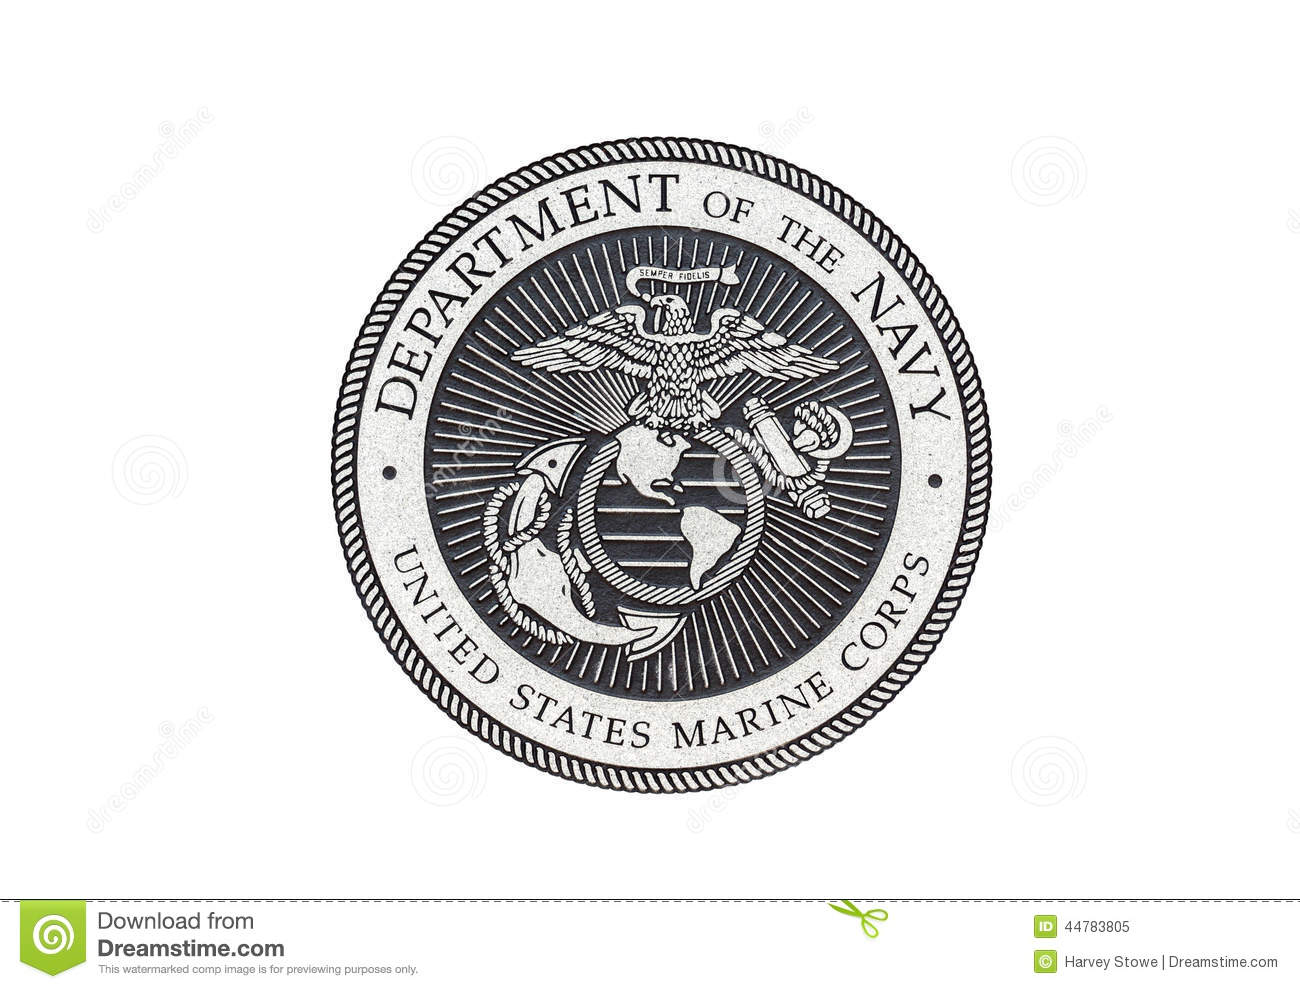 U.S. Marine Corps official seal